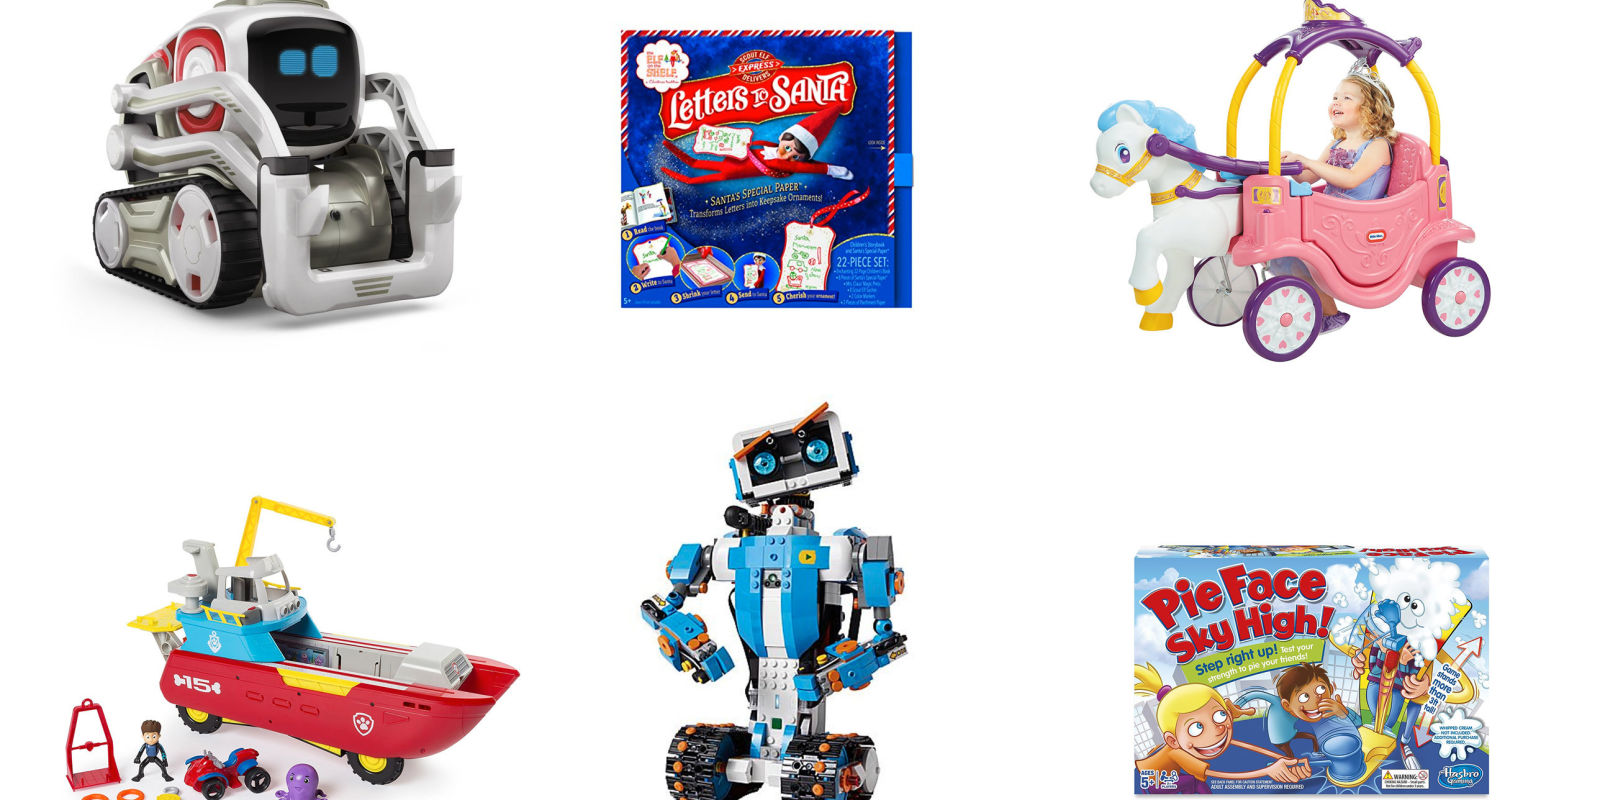 Toys For Christmas List : Best toys for christmas on every child s wish